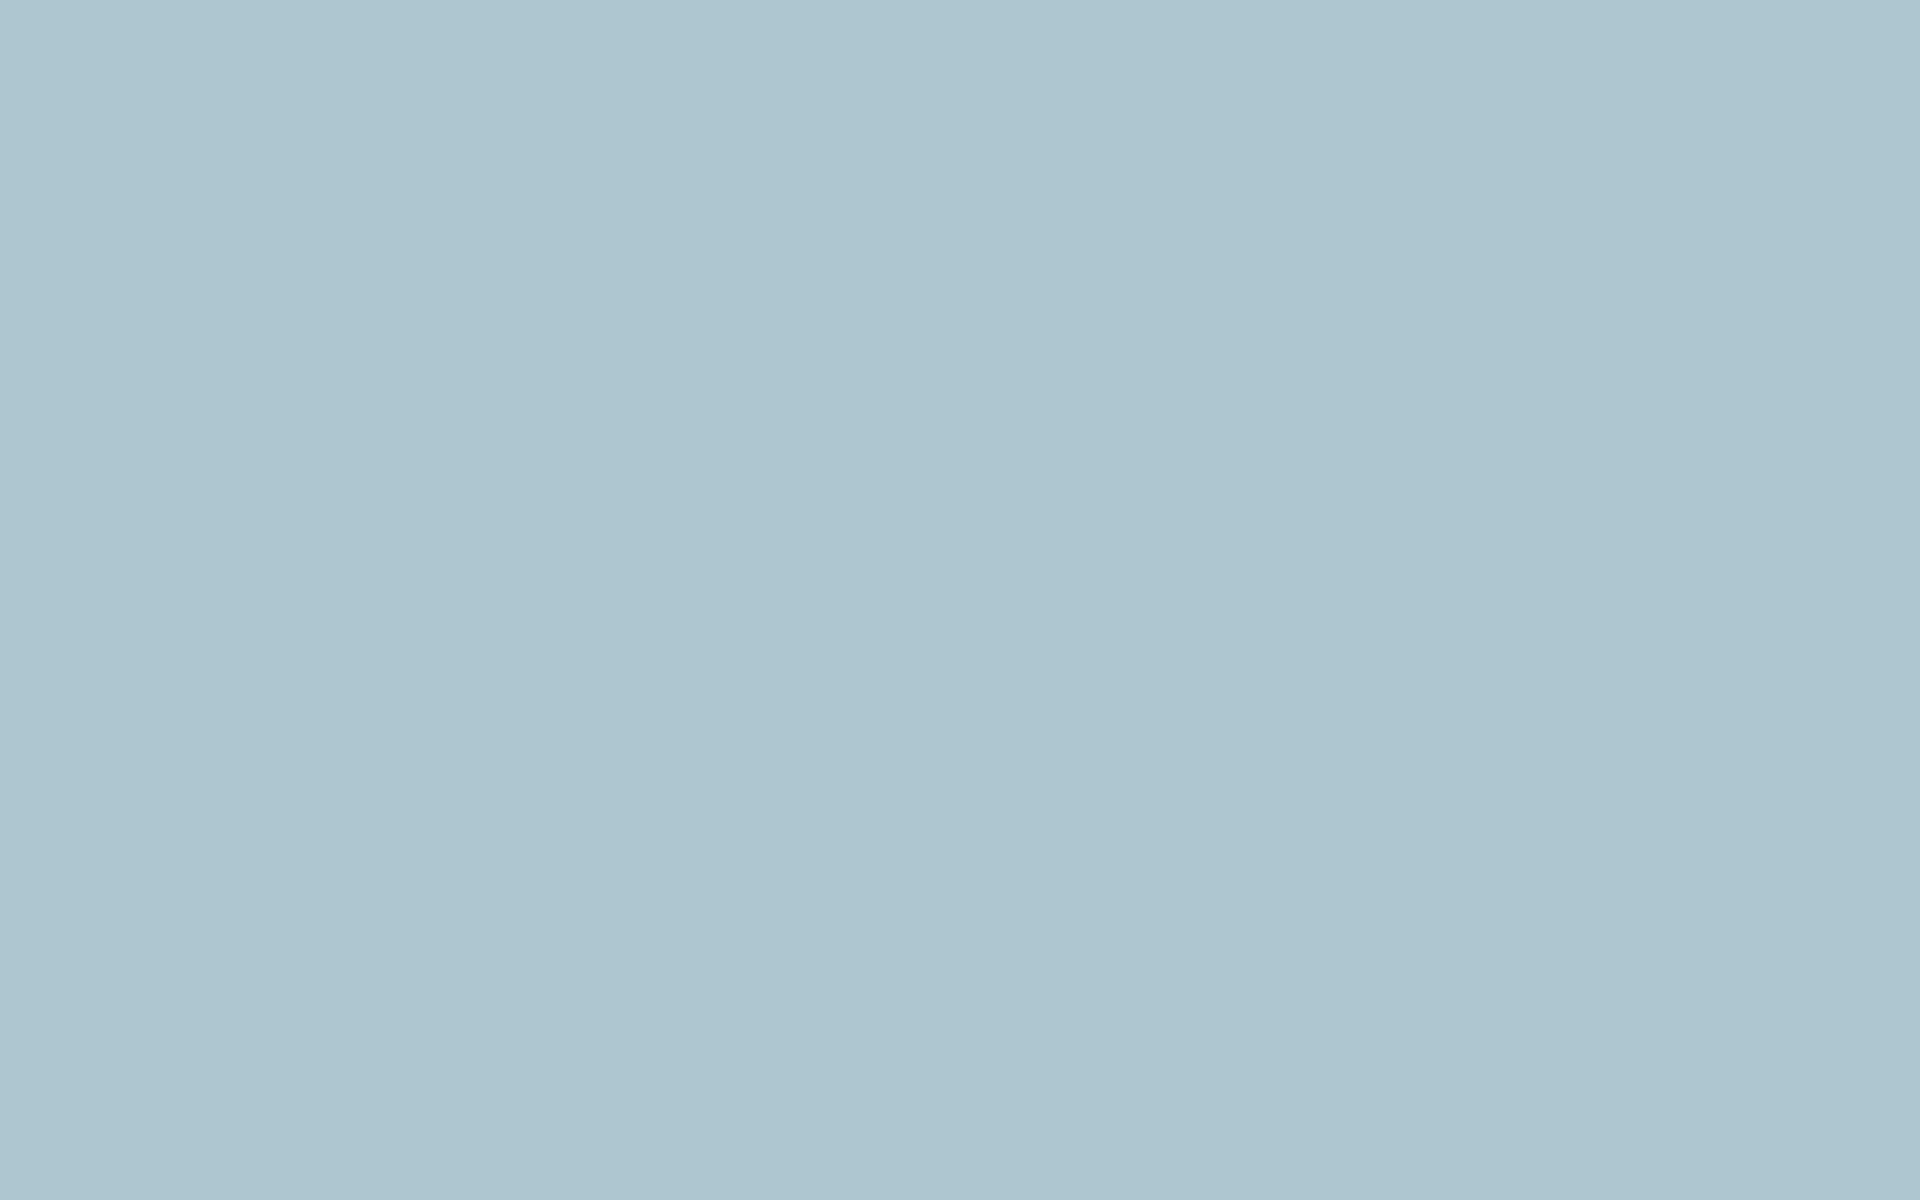 1920x1200 Pastel Blue Solid Color Background